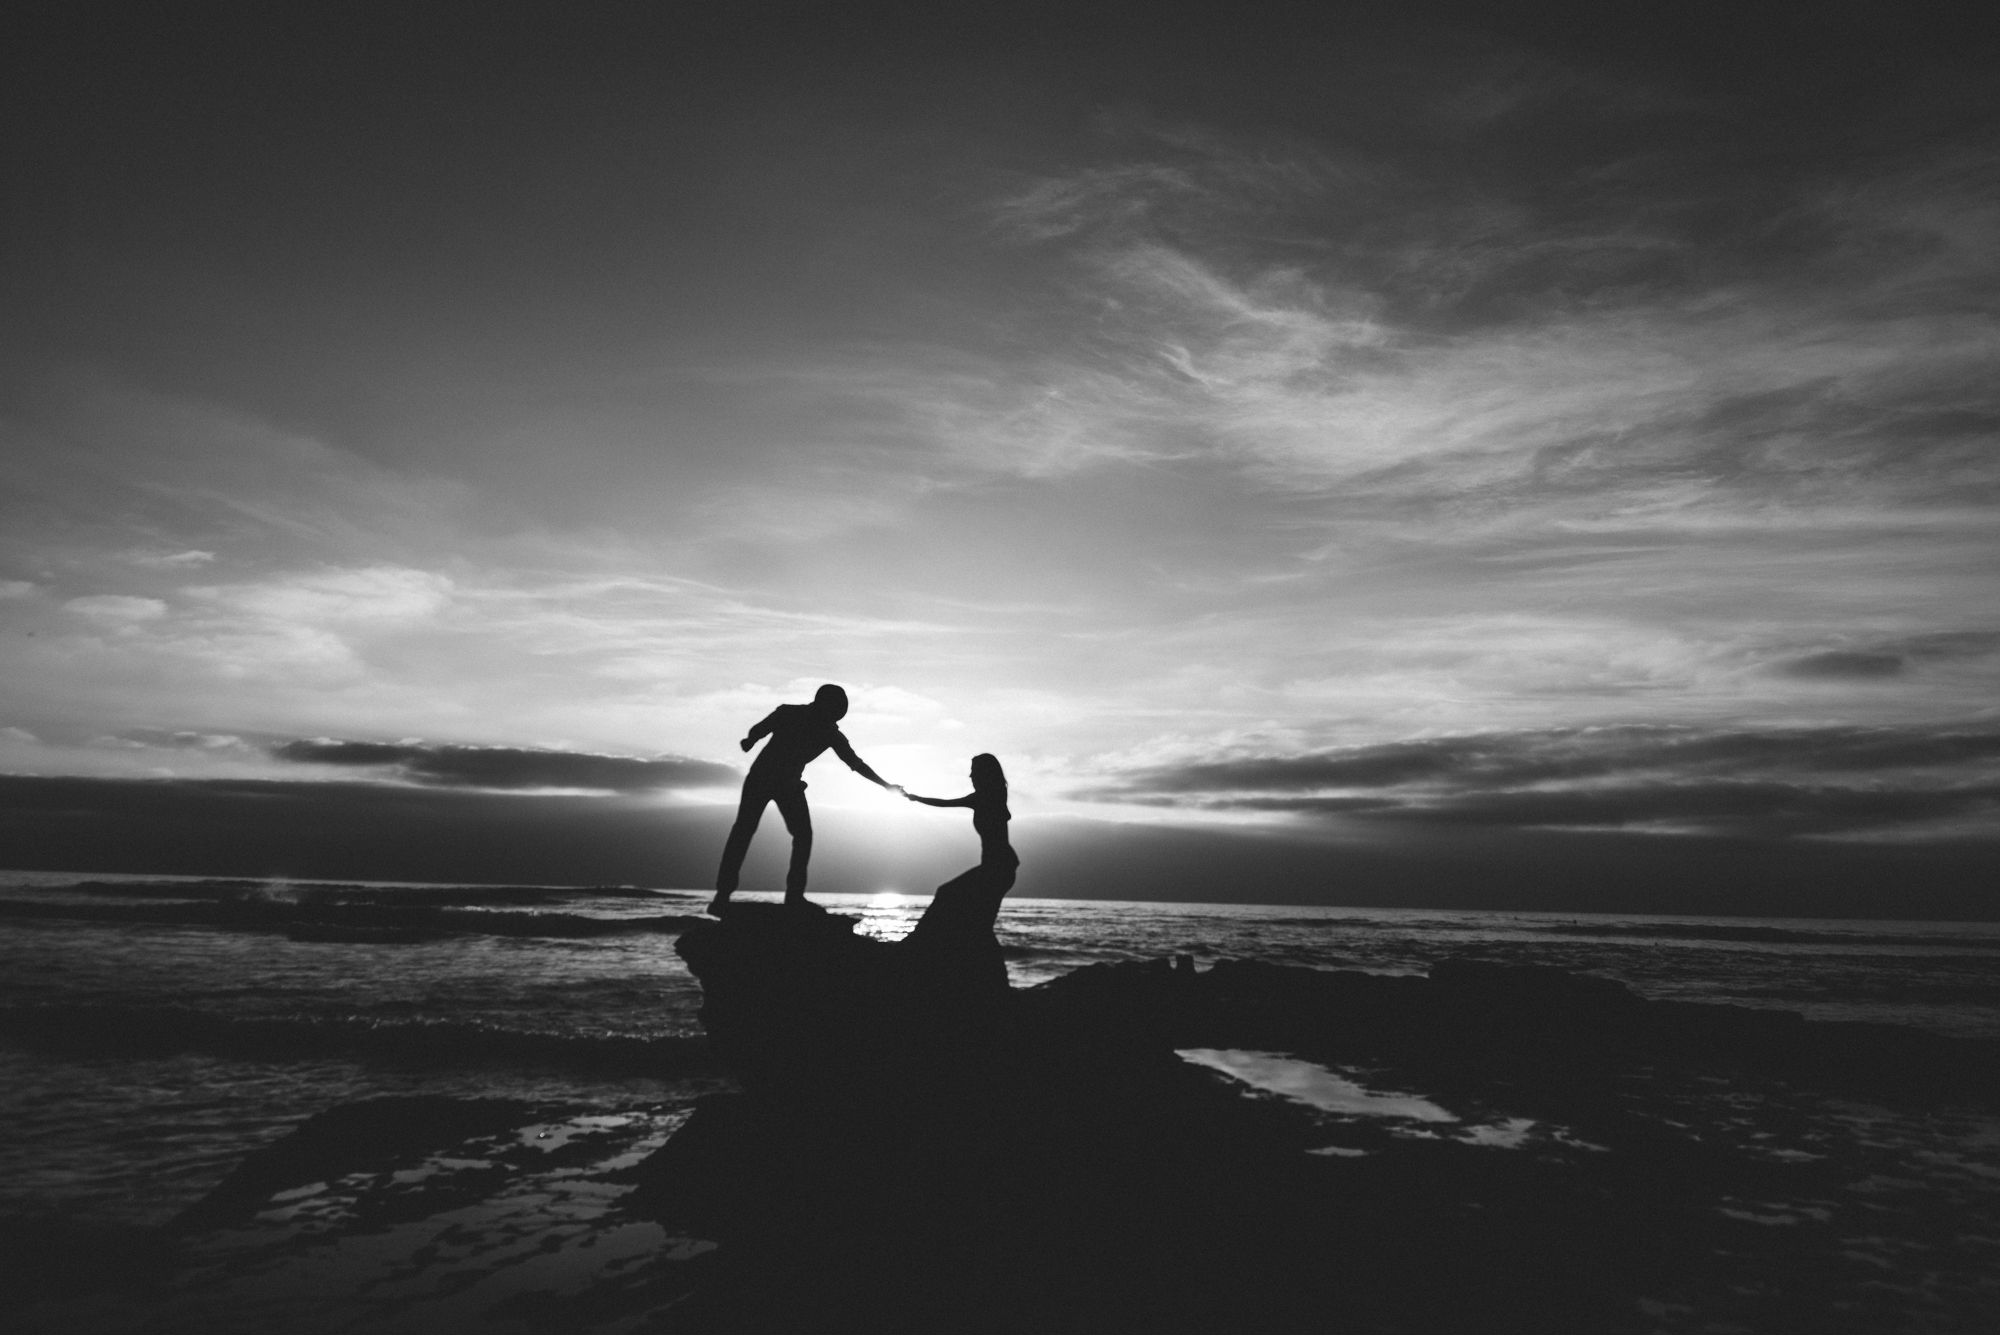 Isaiah & Taylor Photography - Los Angeles - Destination Wedding Photographers - San Diego Sunset Cliffs Beach Adventure Engagement-29.jpg